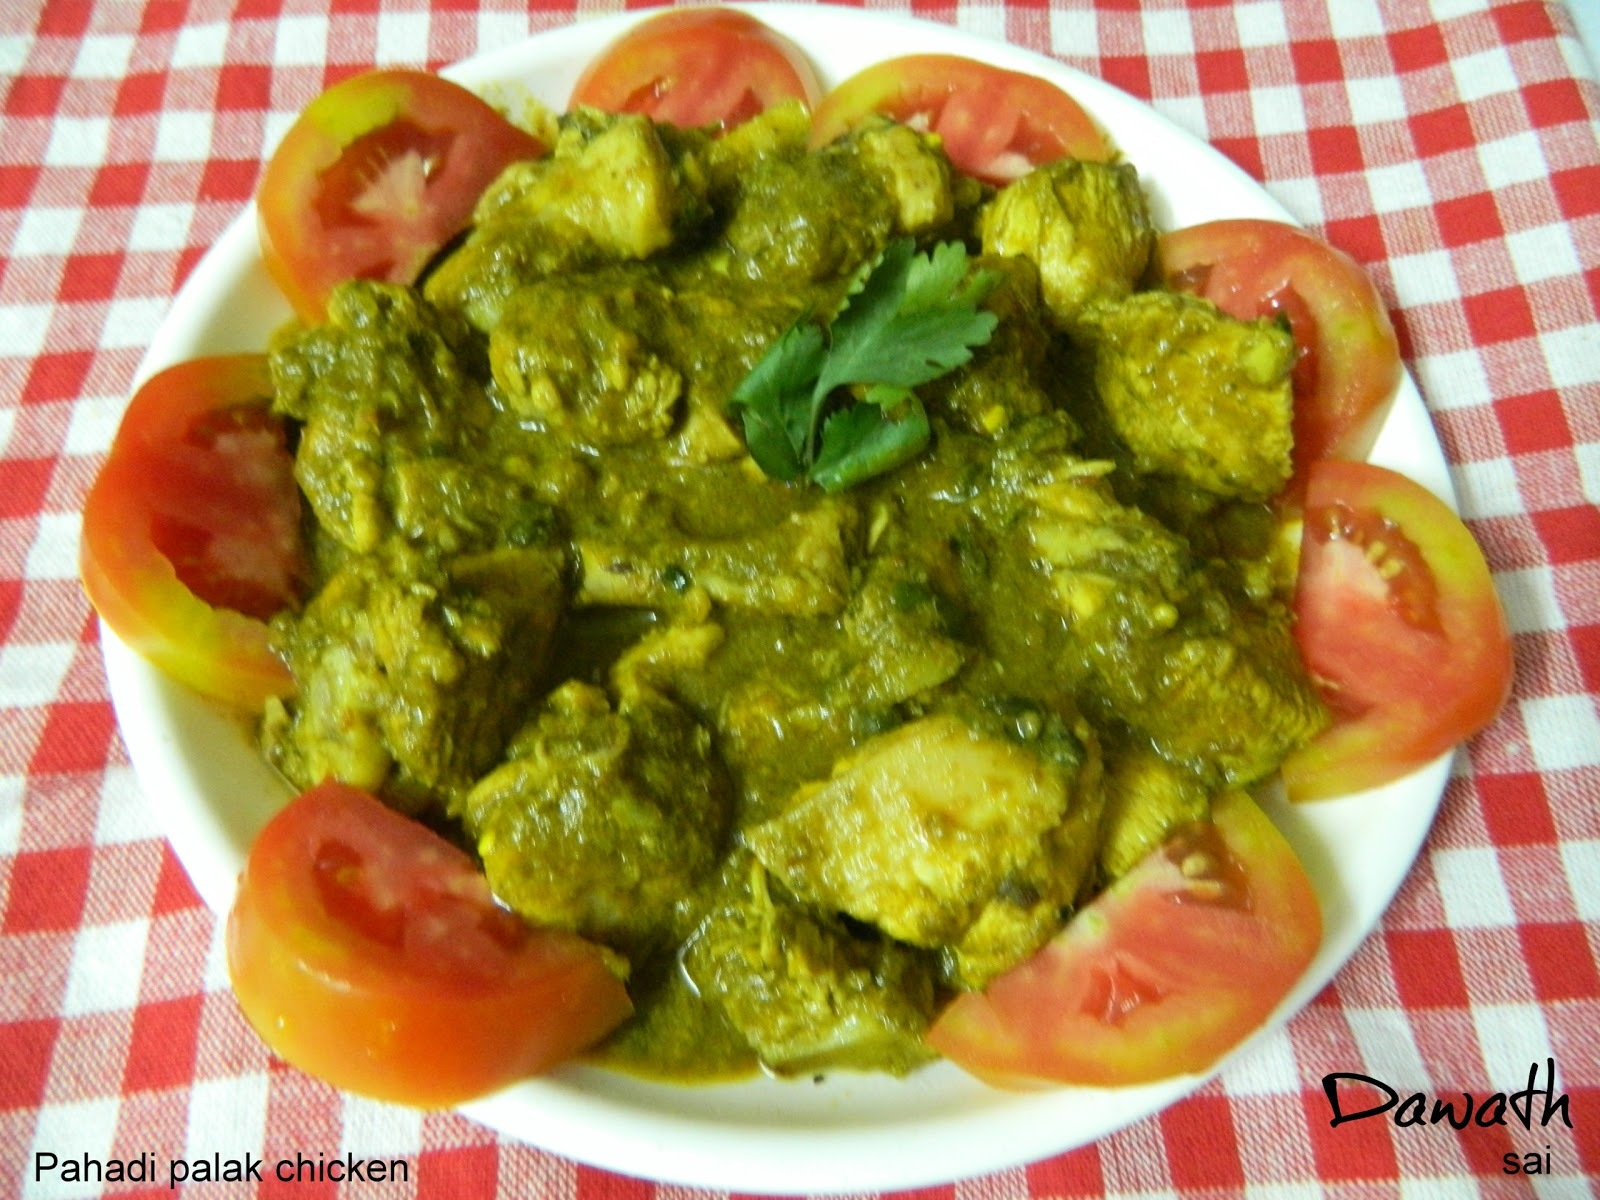 Pahadi palak chicken